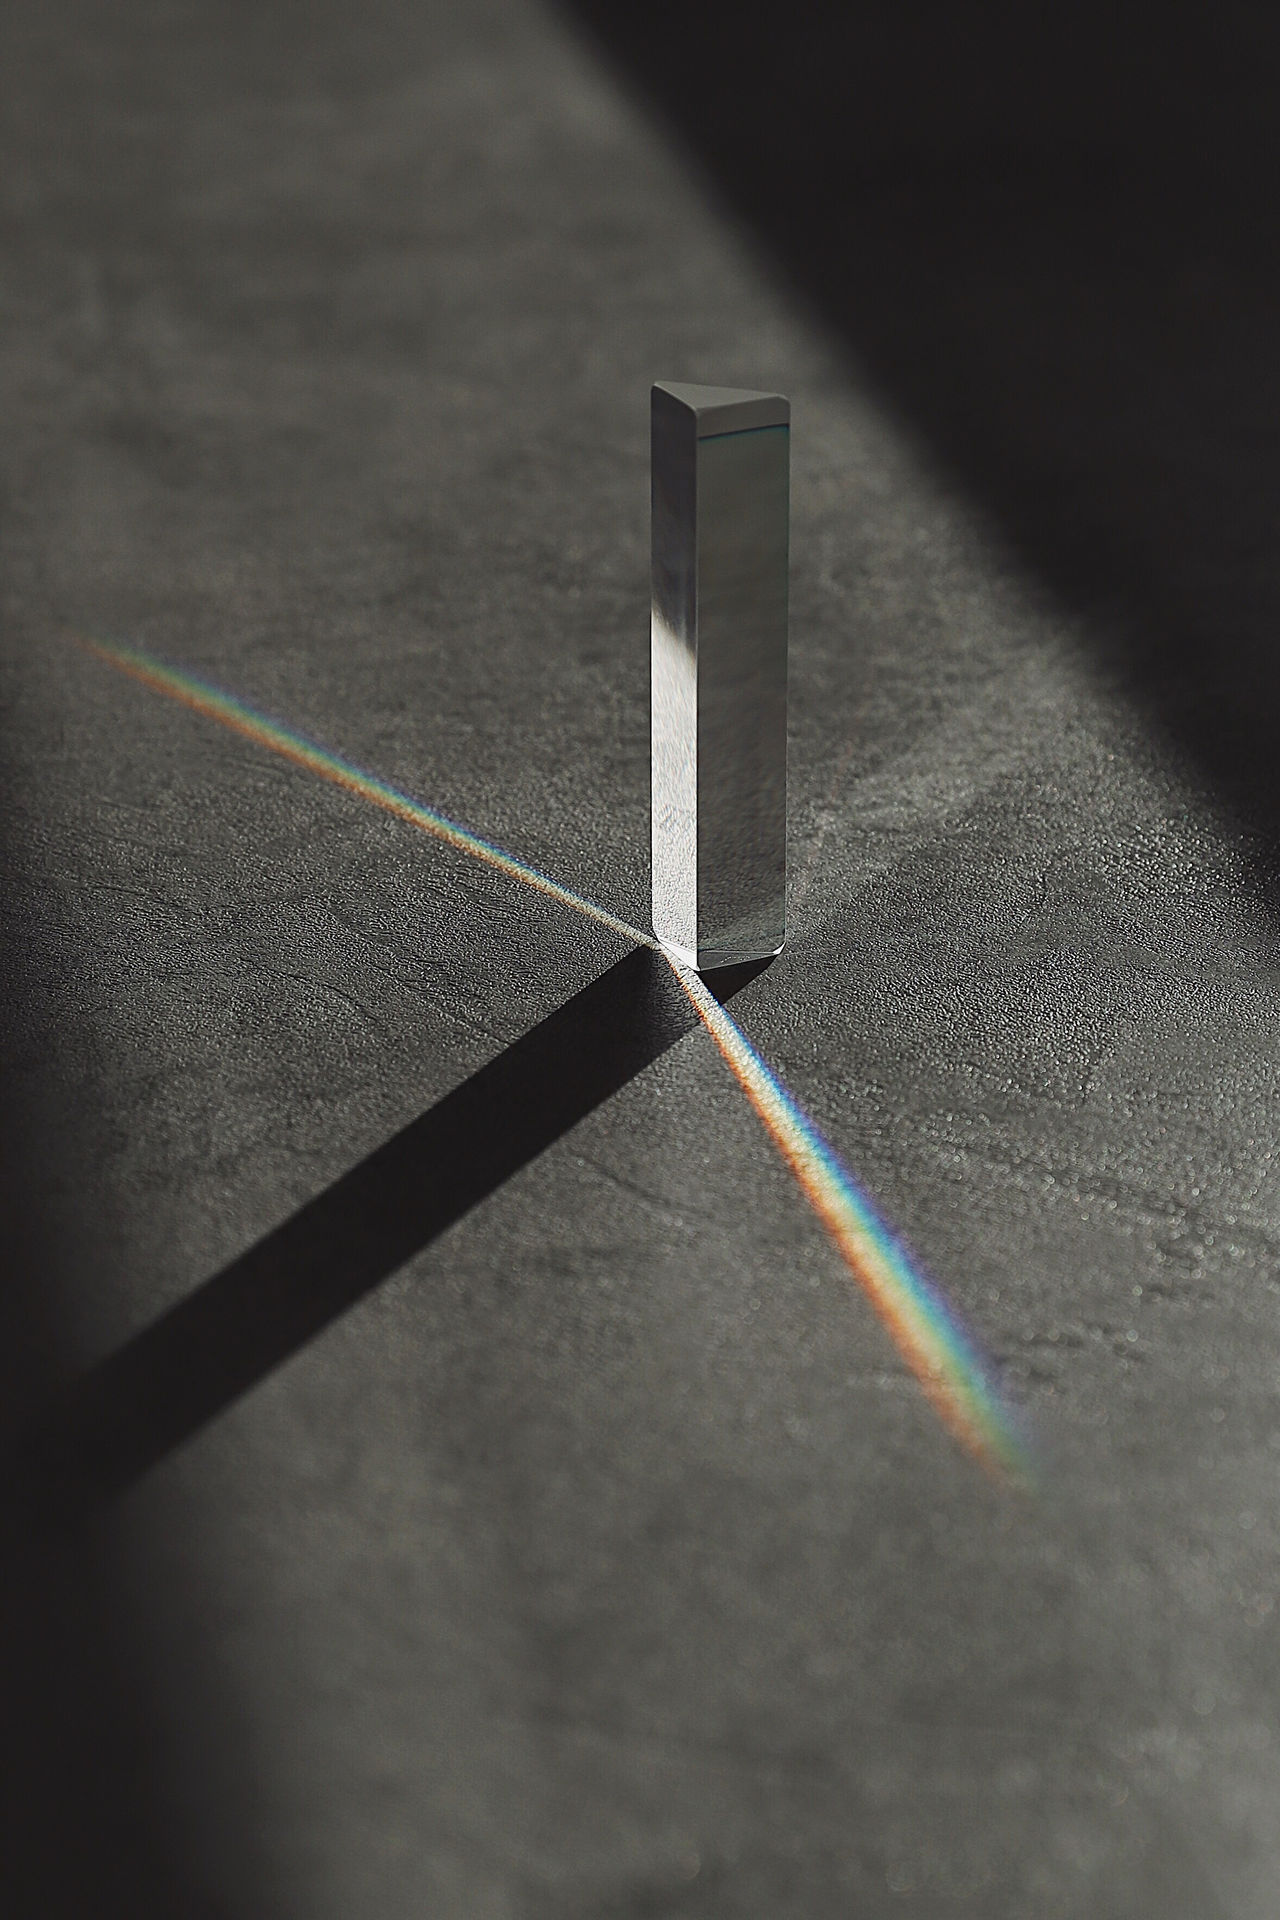 High angle view of prism on table